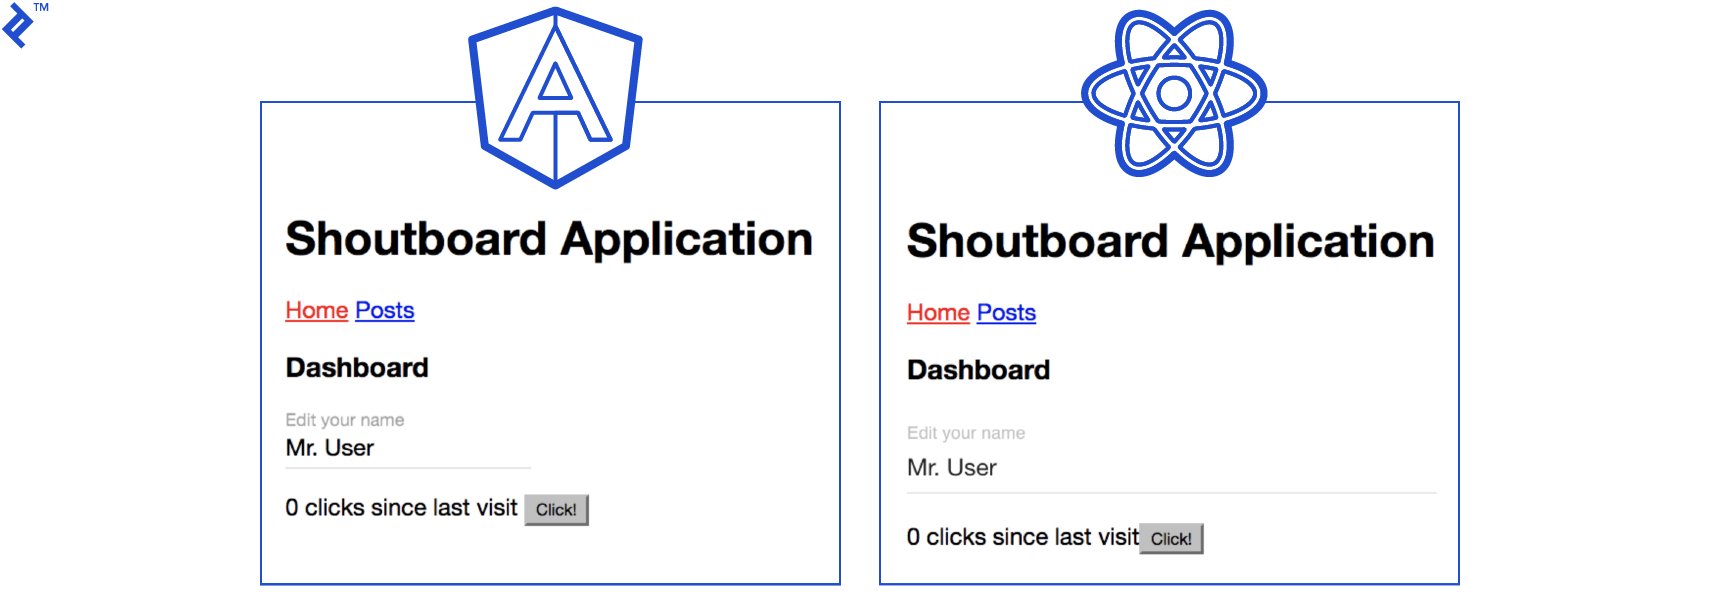 Shoutboard Application